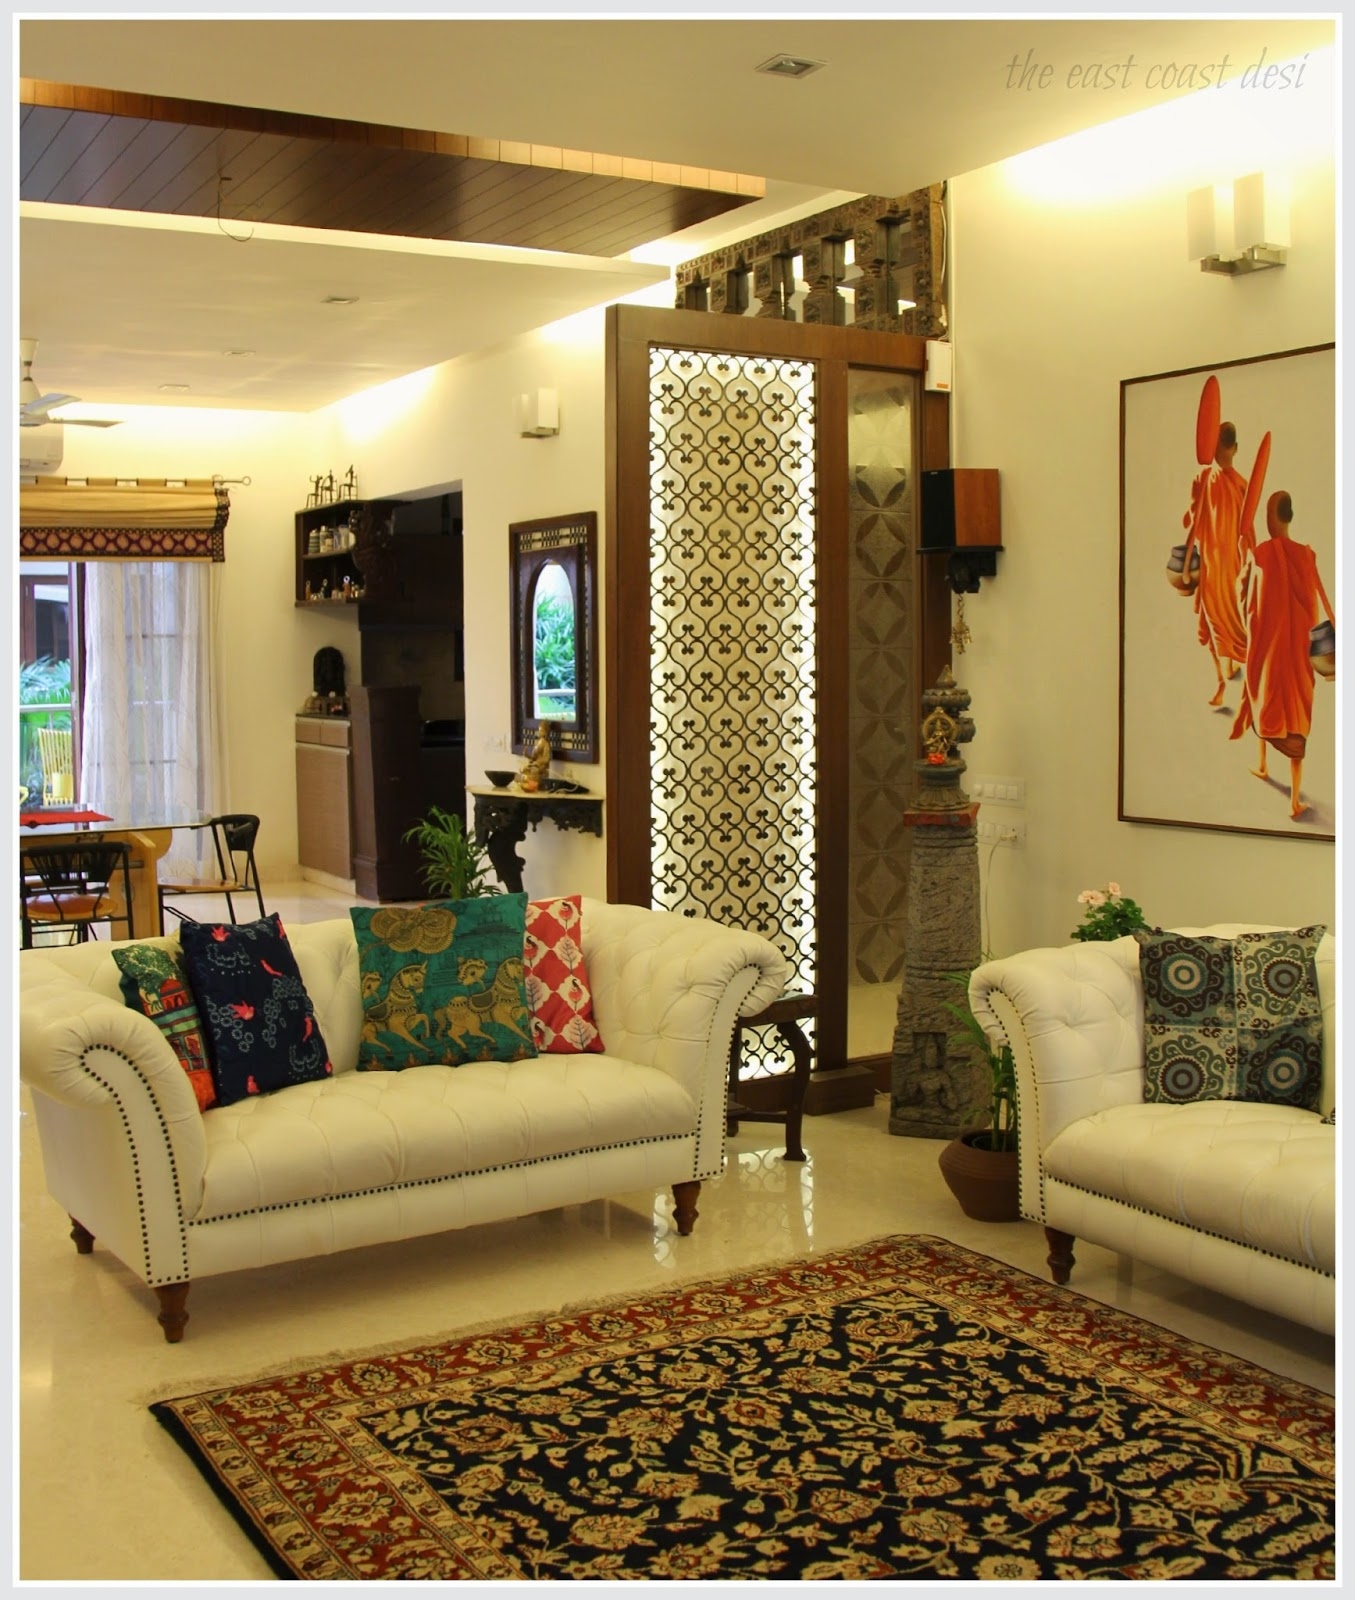 The east coast desi masterful mixing home tour for Interior design of kitchen room in india